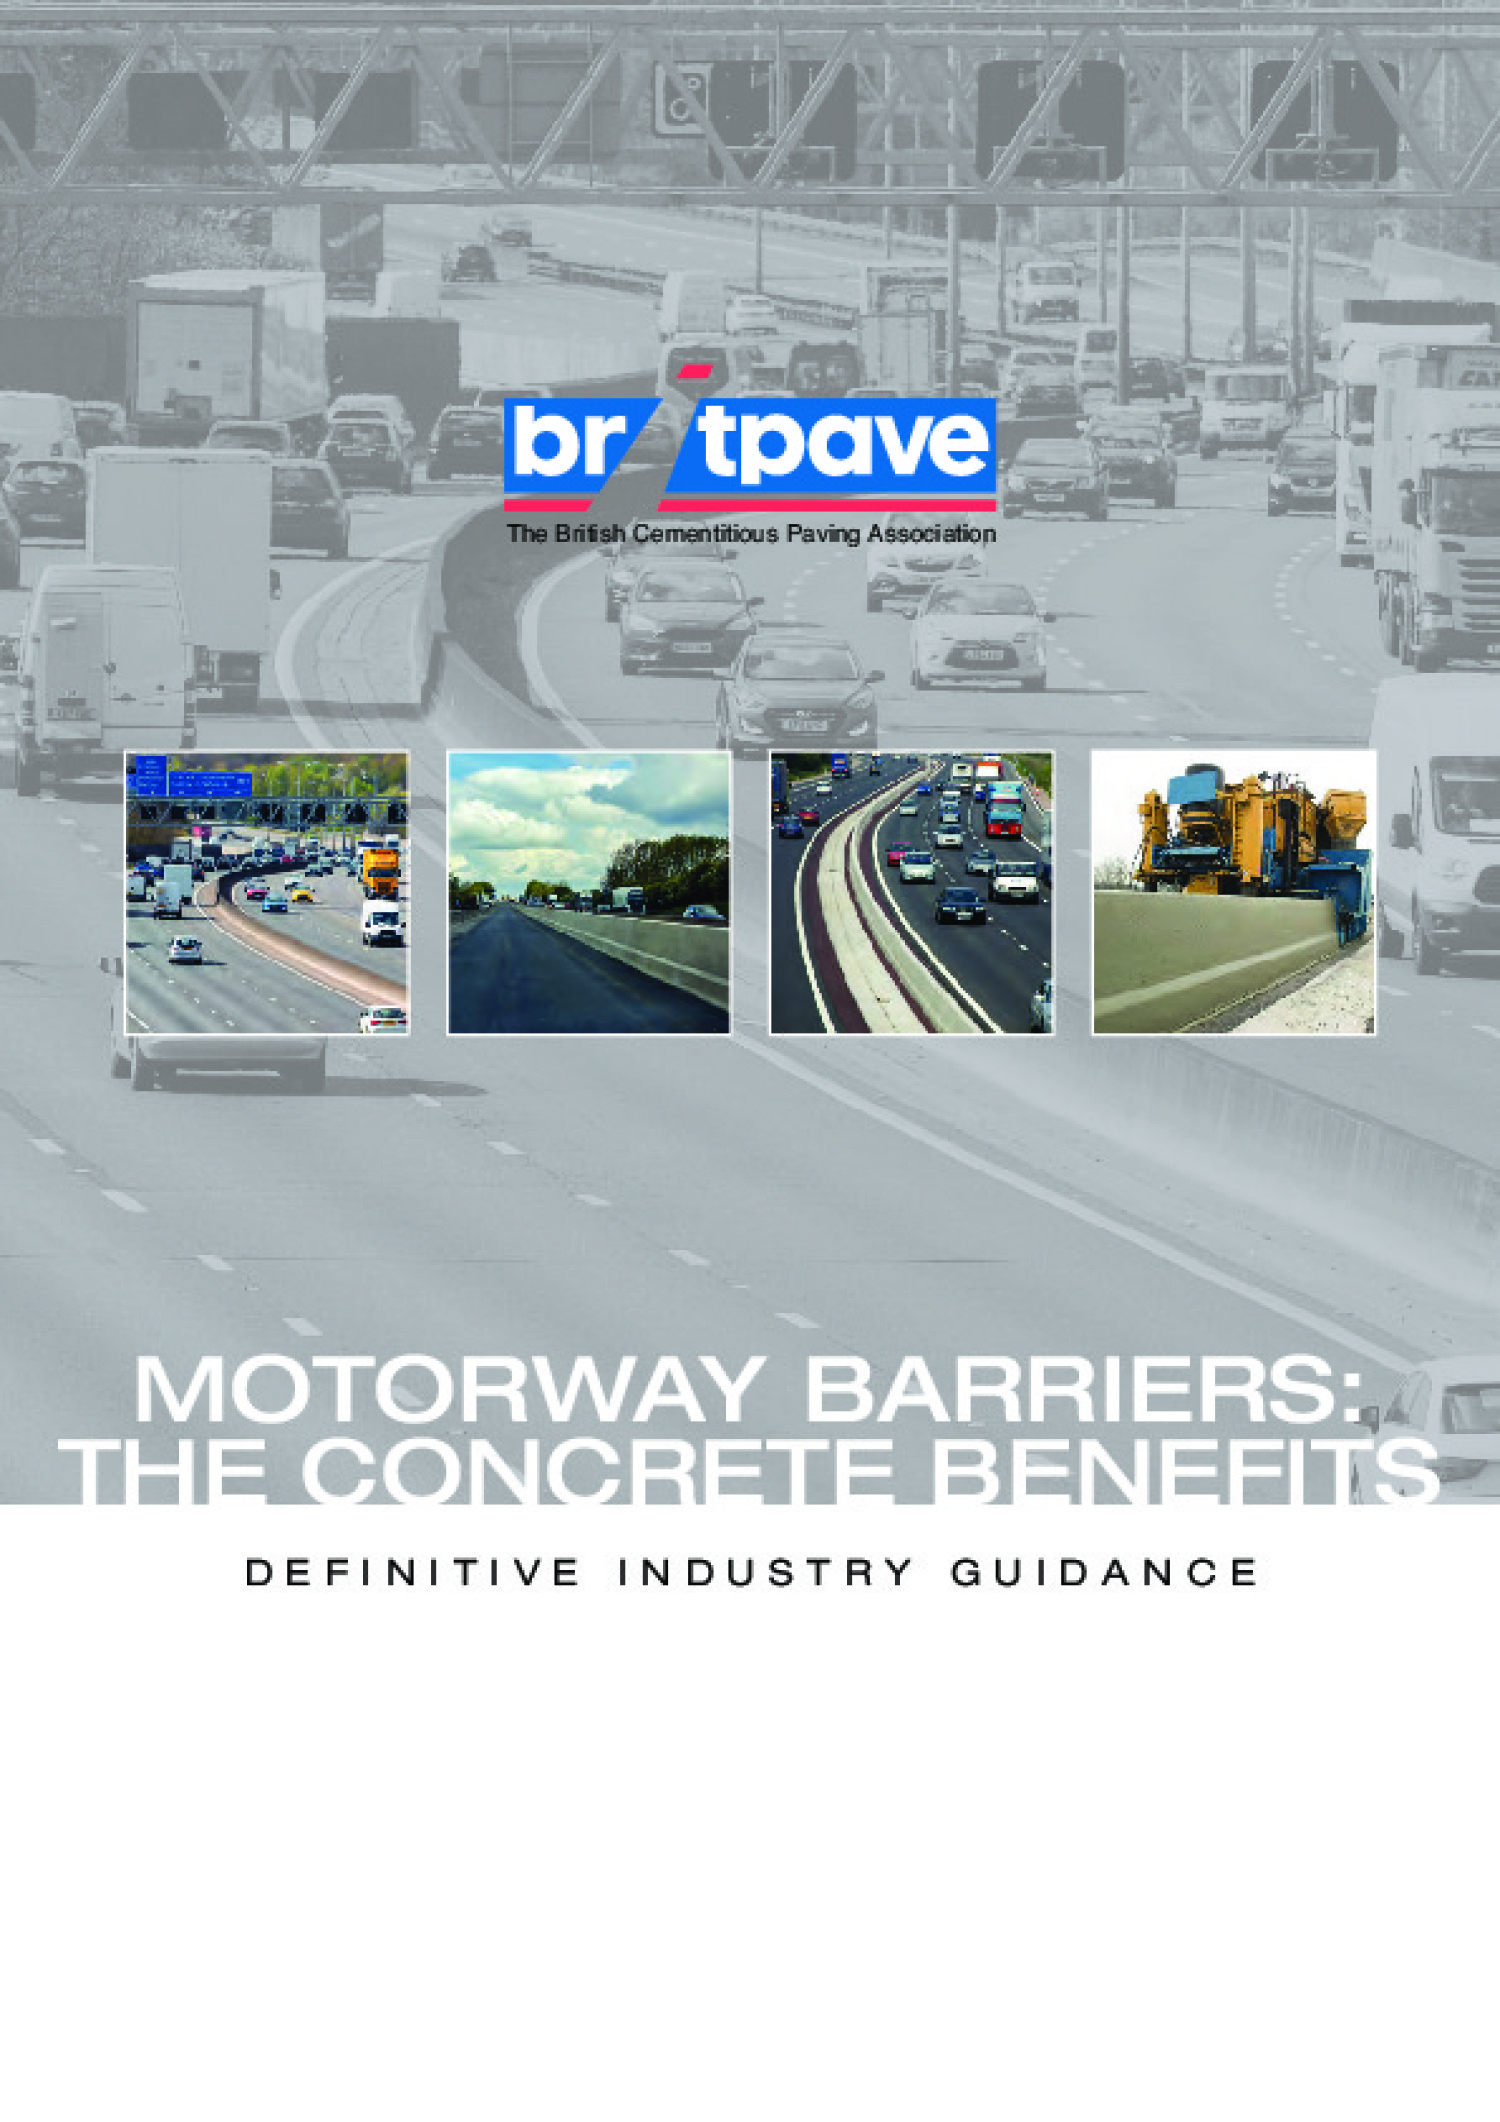 Picture of Motorway barriers: the concrete benefits